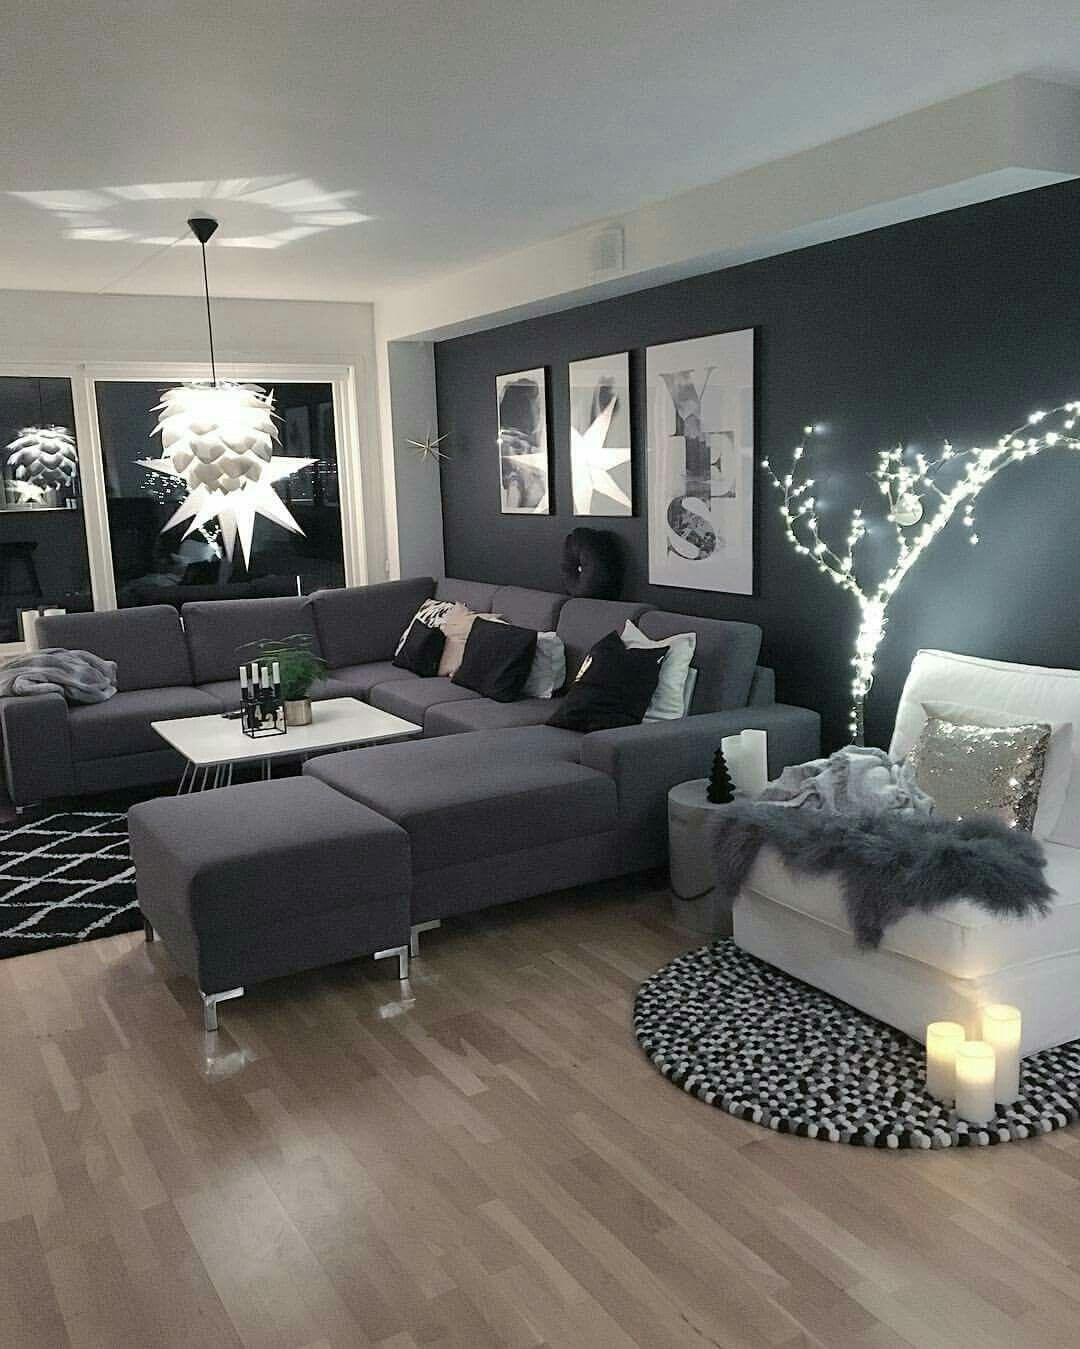 grey living room ideas pinterest furniture sets for cheap maisieleblanc thephotown magazine lifestyle lille salon livingroom black white and